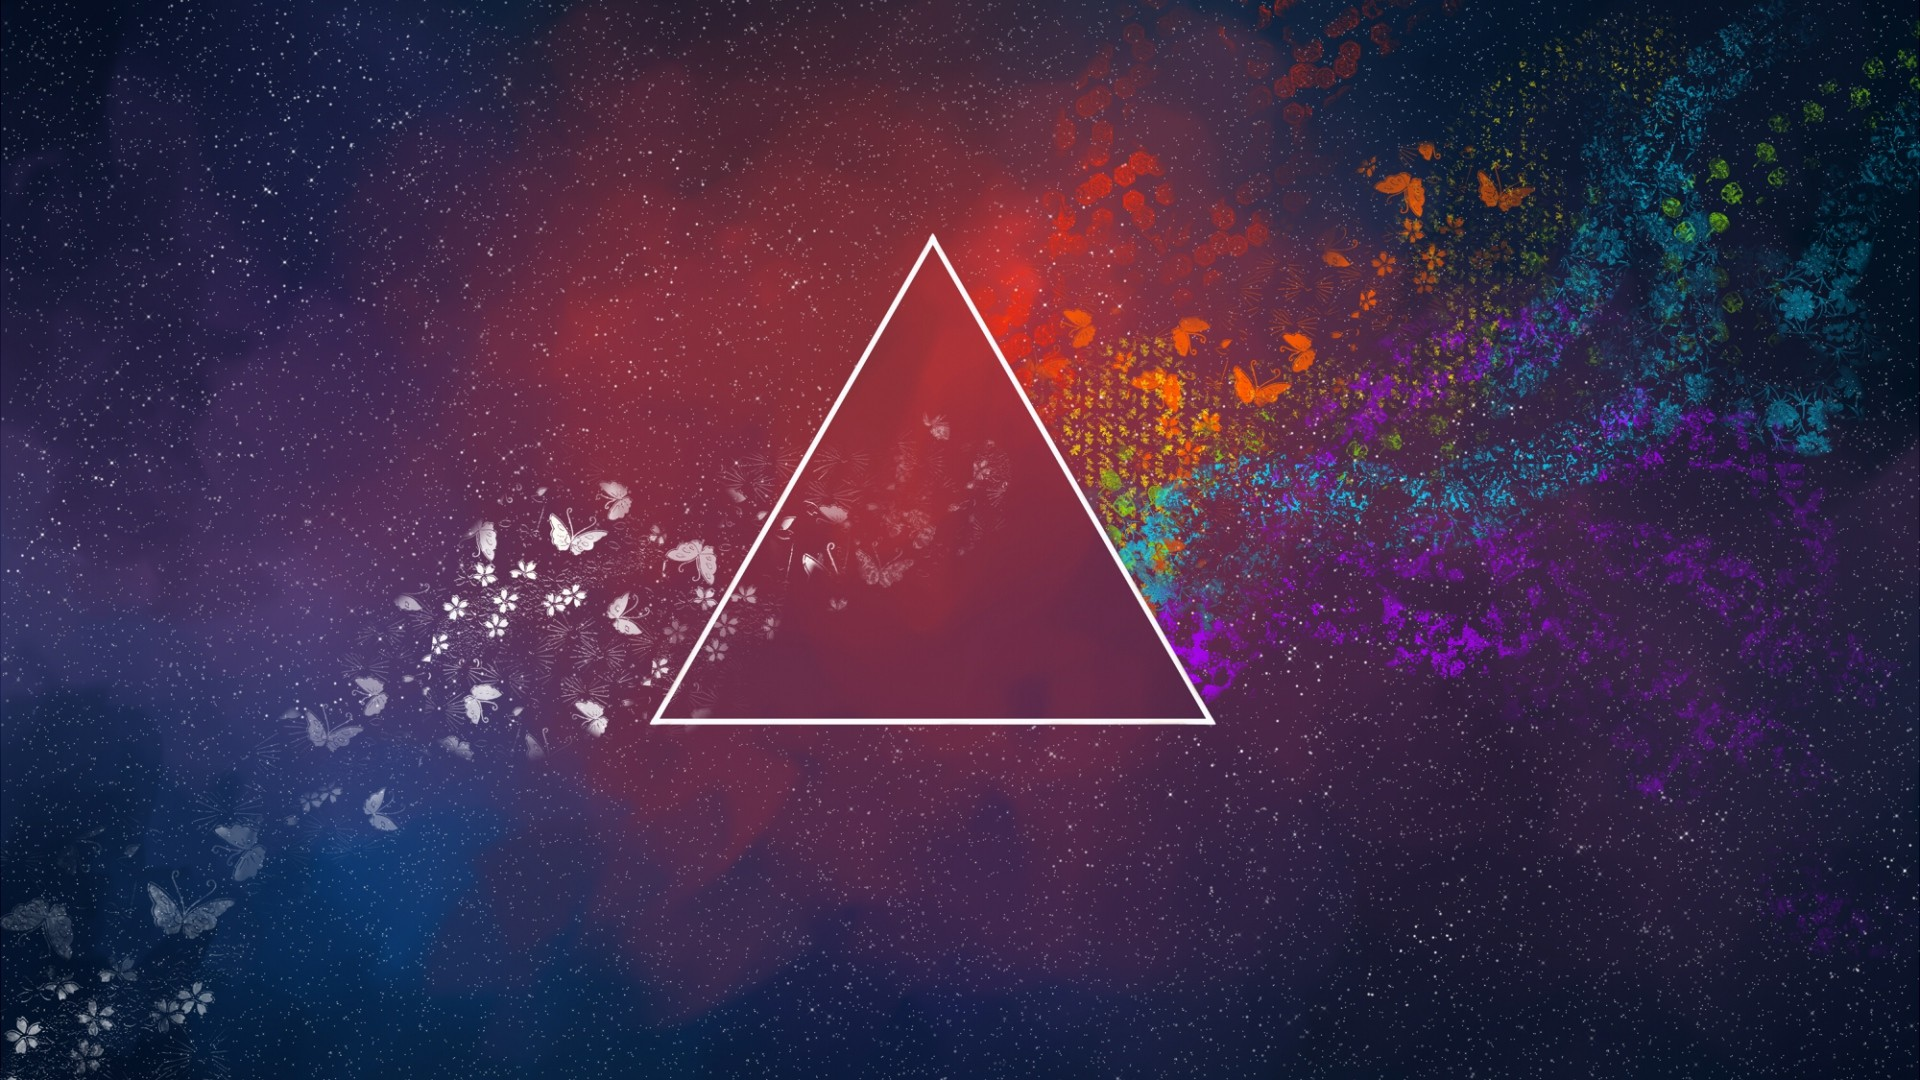 General 1920x1080 abstract triangle flowers Pink Floyd The Dark Side of the Moon colorful butterfly digital art